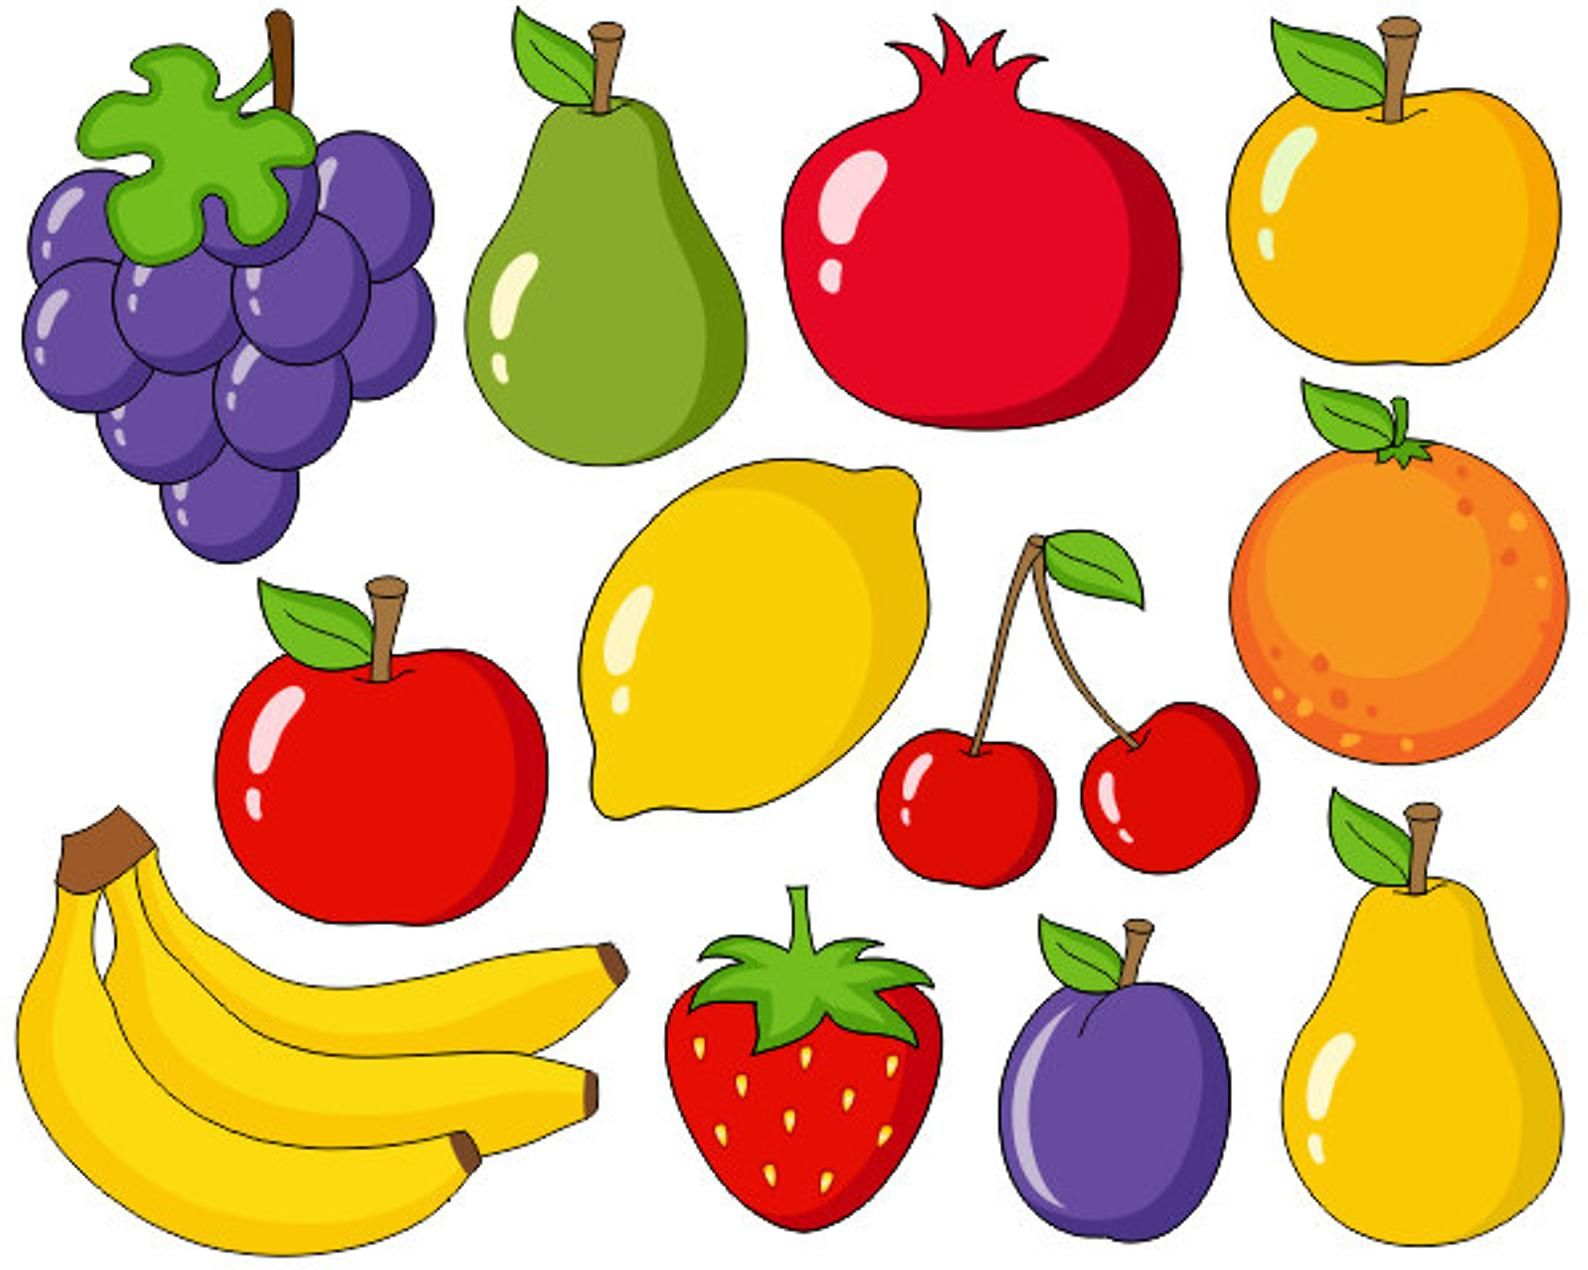 Cute Fruits Digital Clip Art Grapes Apple Bananas Pear Etsy Fruits Images With Name Fruits Images Cute Fruit